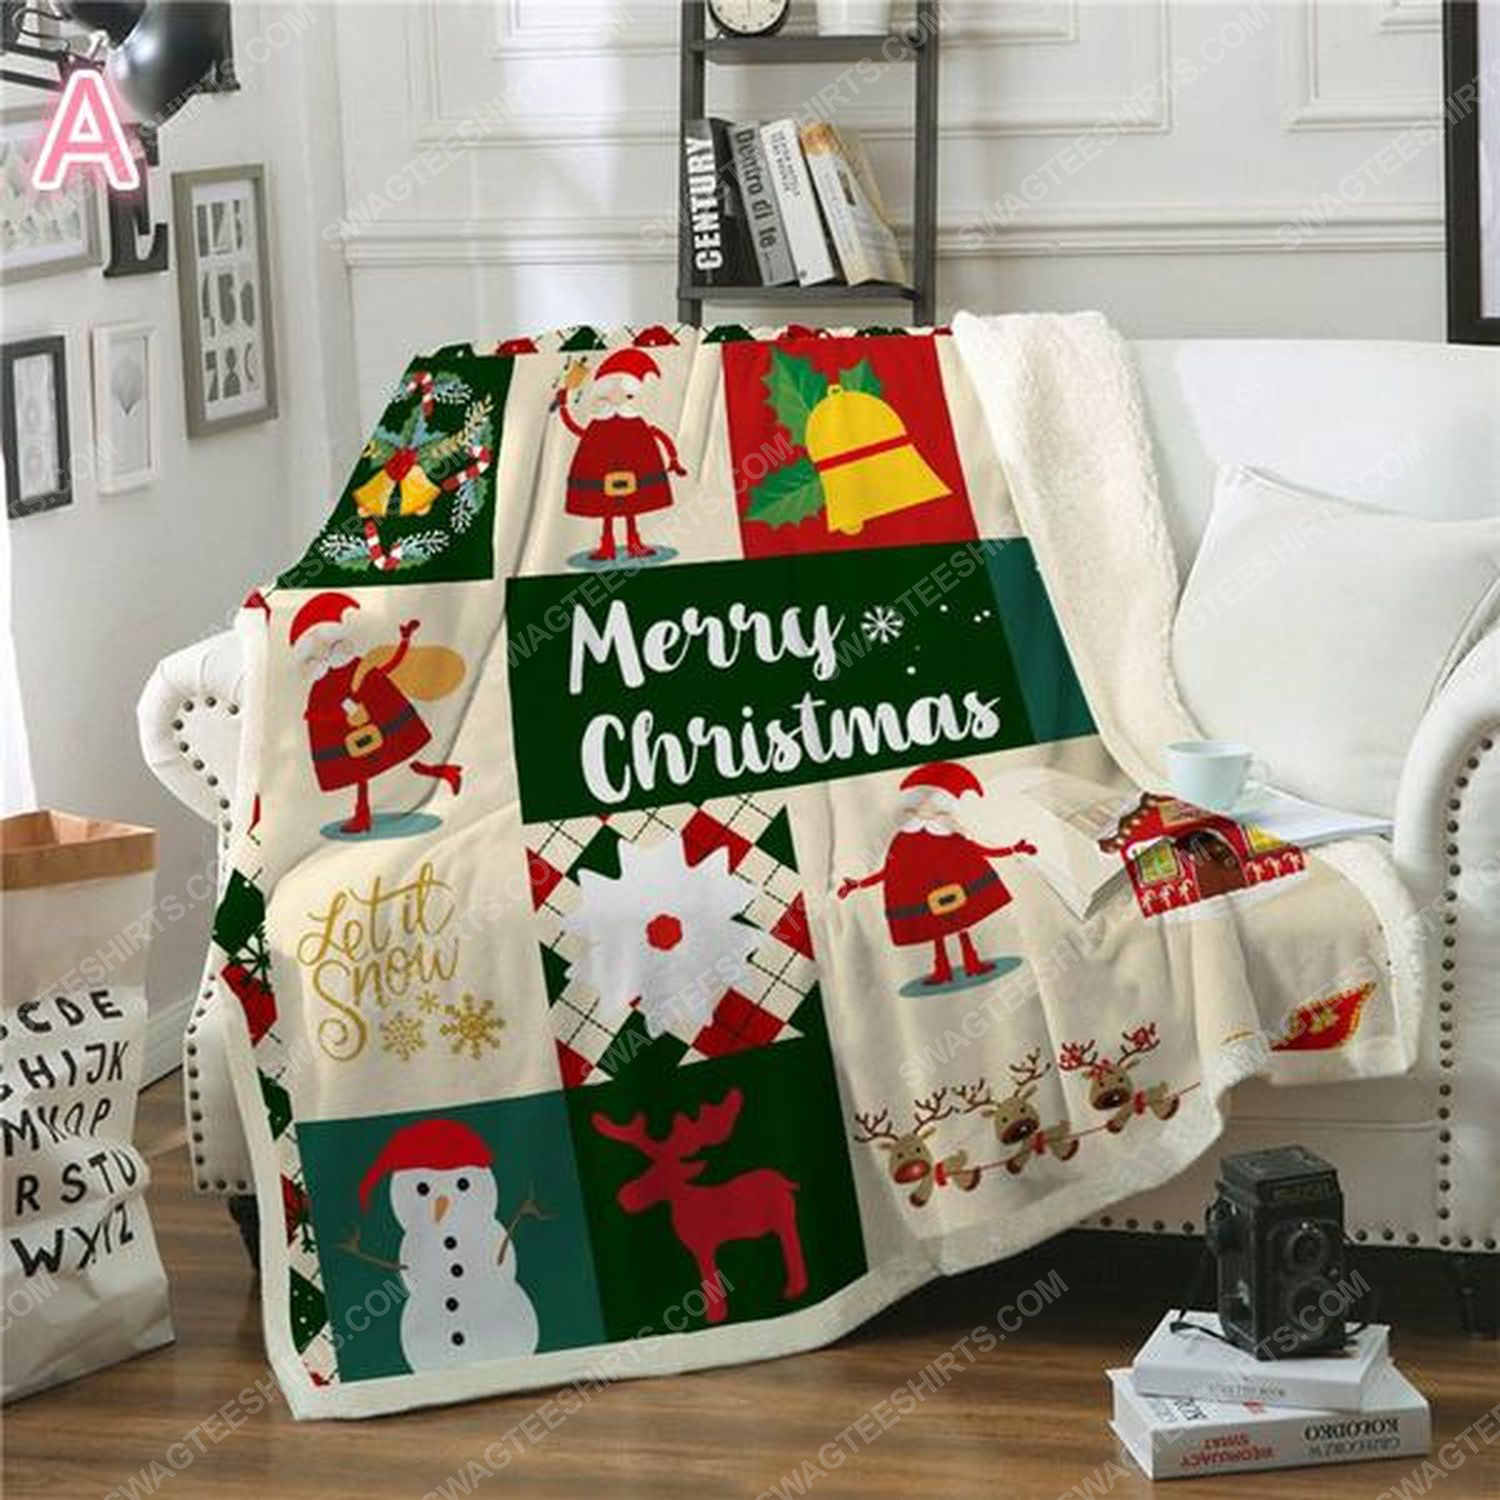 Merry christmas and let it snow blanket 2